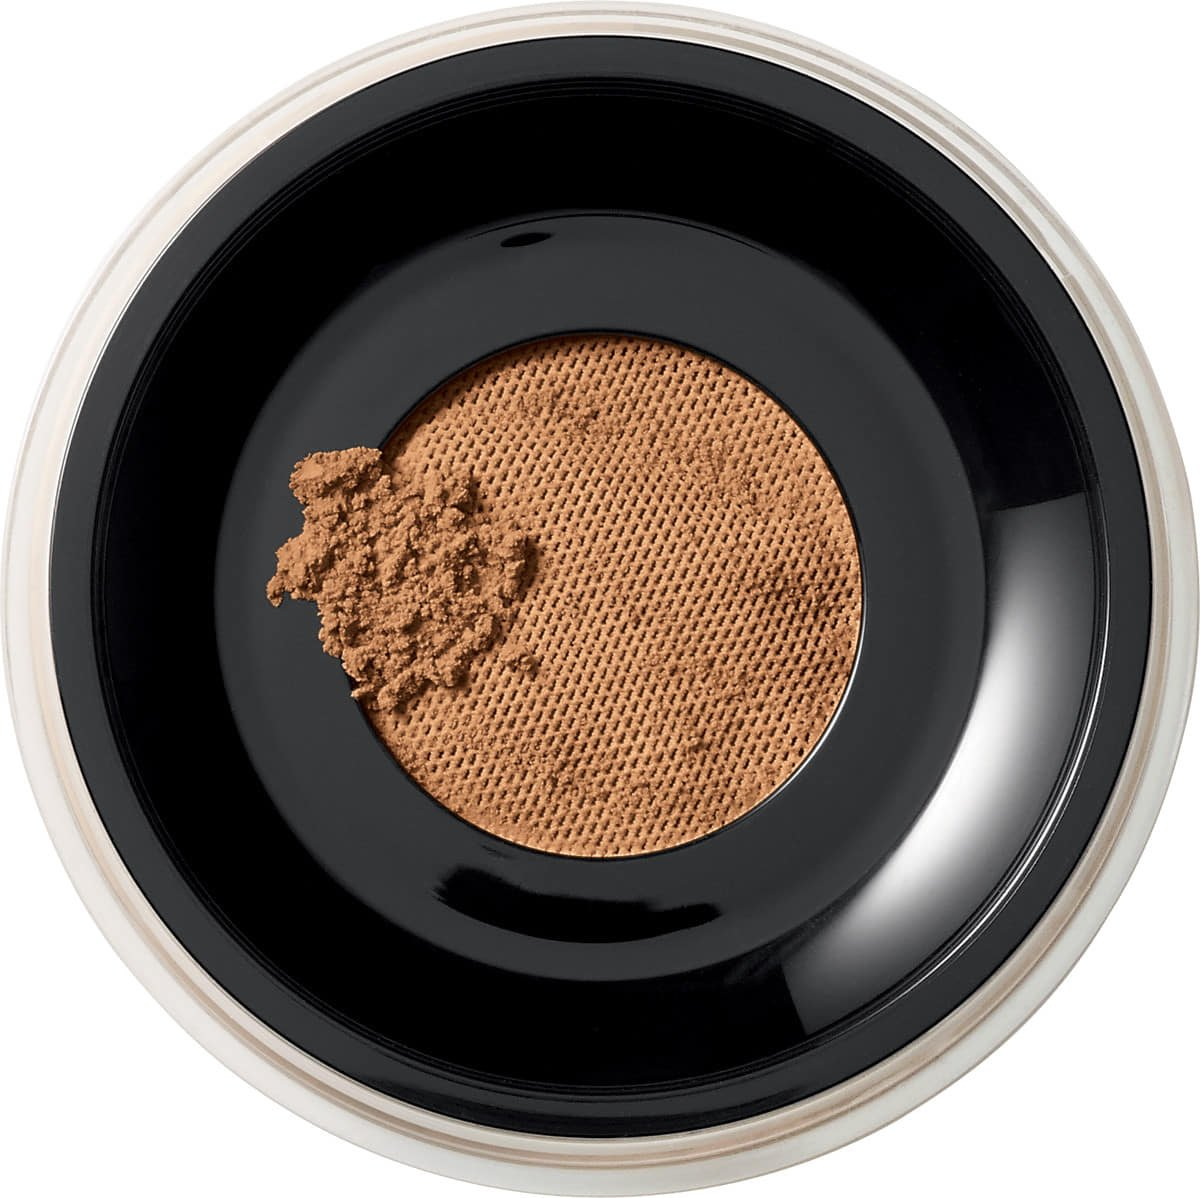 bareMinerals Blemish Remedy Foundation 6g 01 - Clearly Porcelain 78589